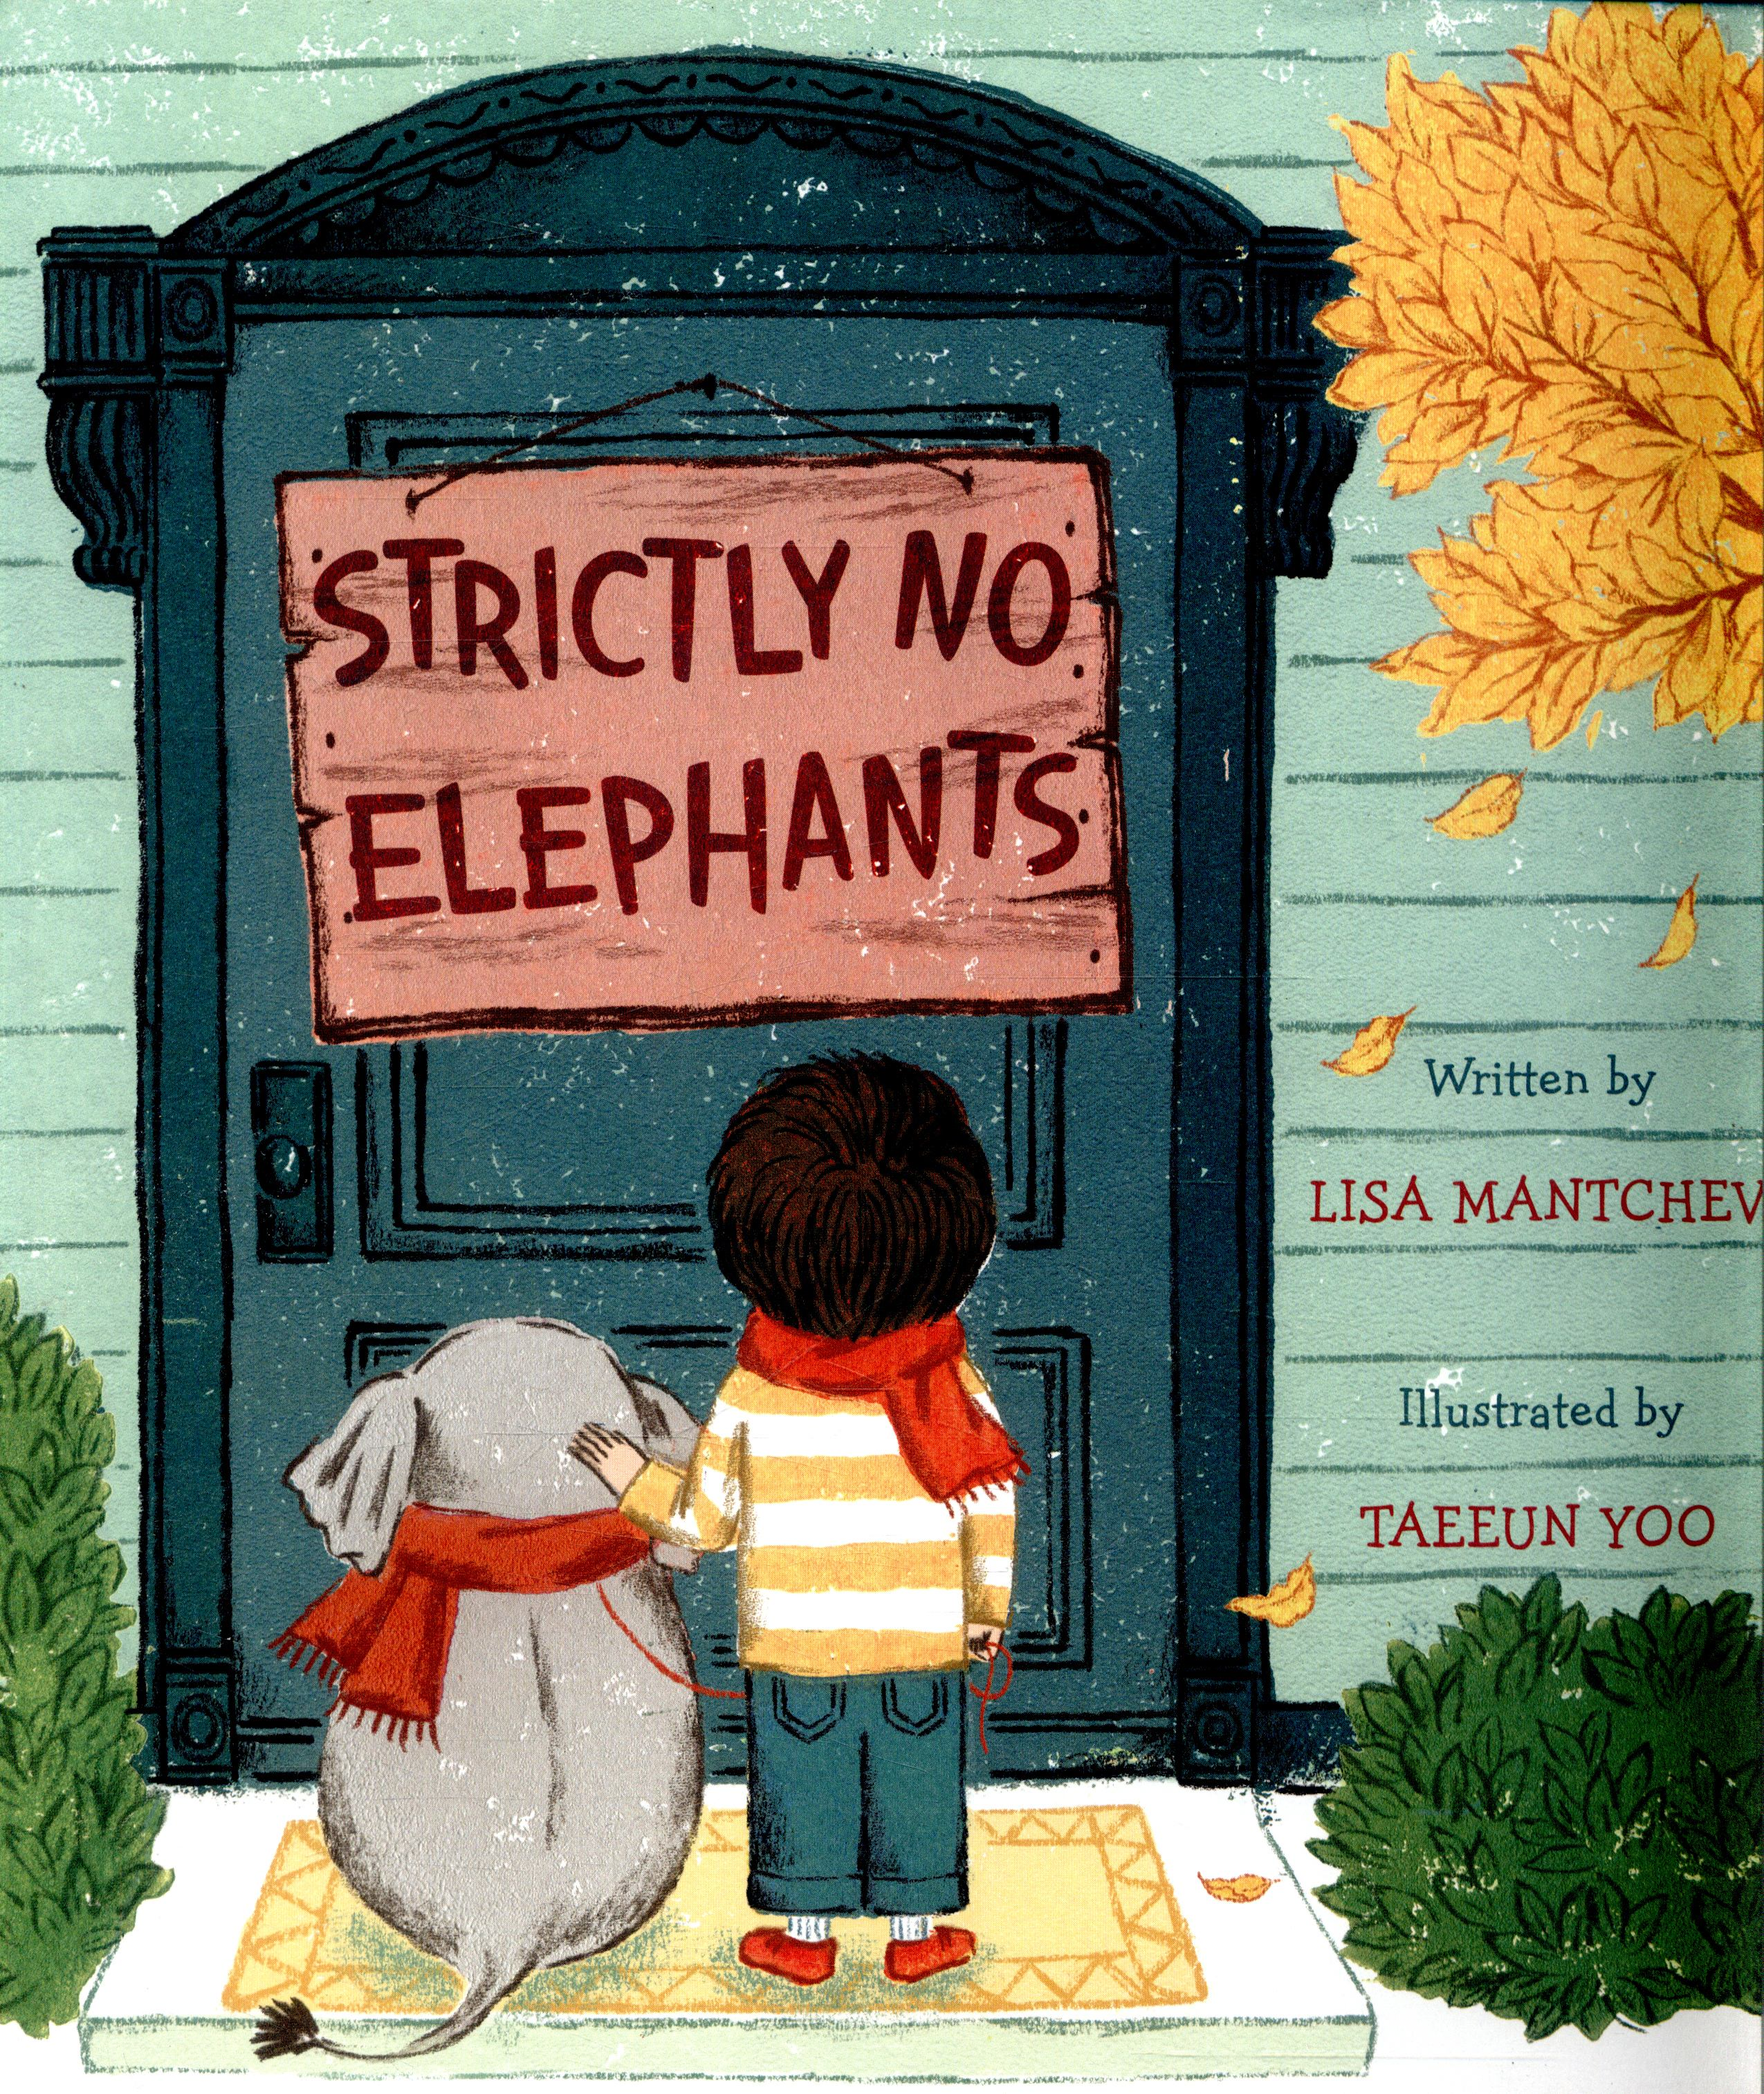 Strictly No Elephants by Lisa Manthchev